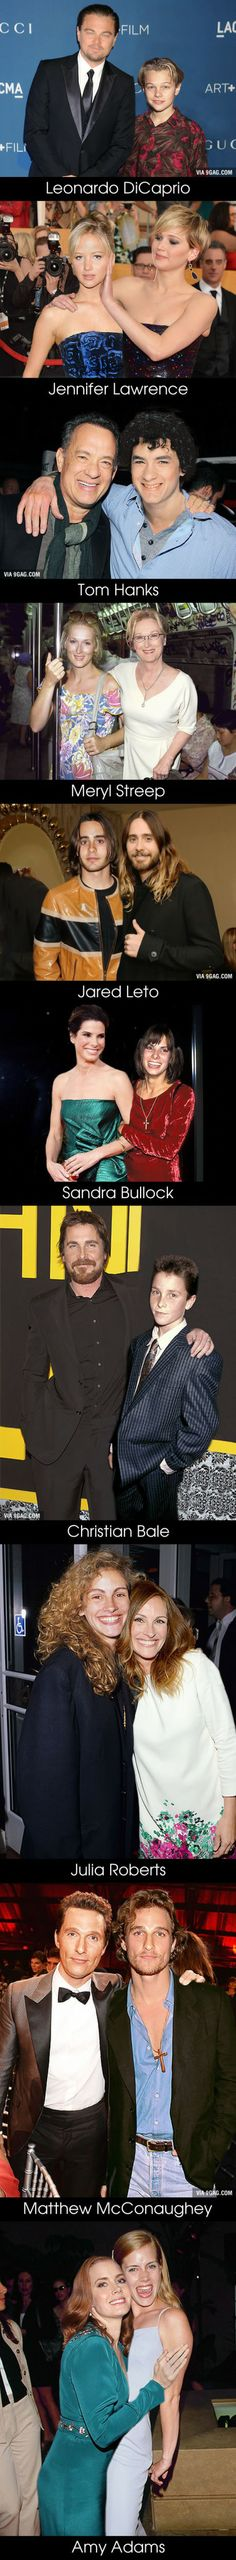 10 Oscar Nominees Posing with Their Younger Selves